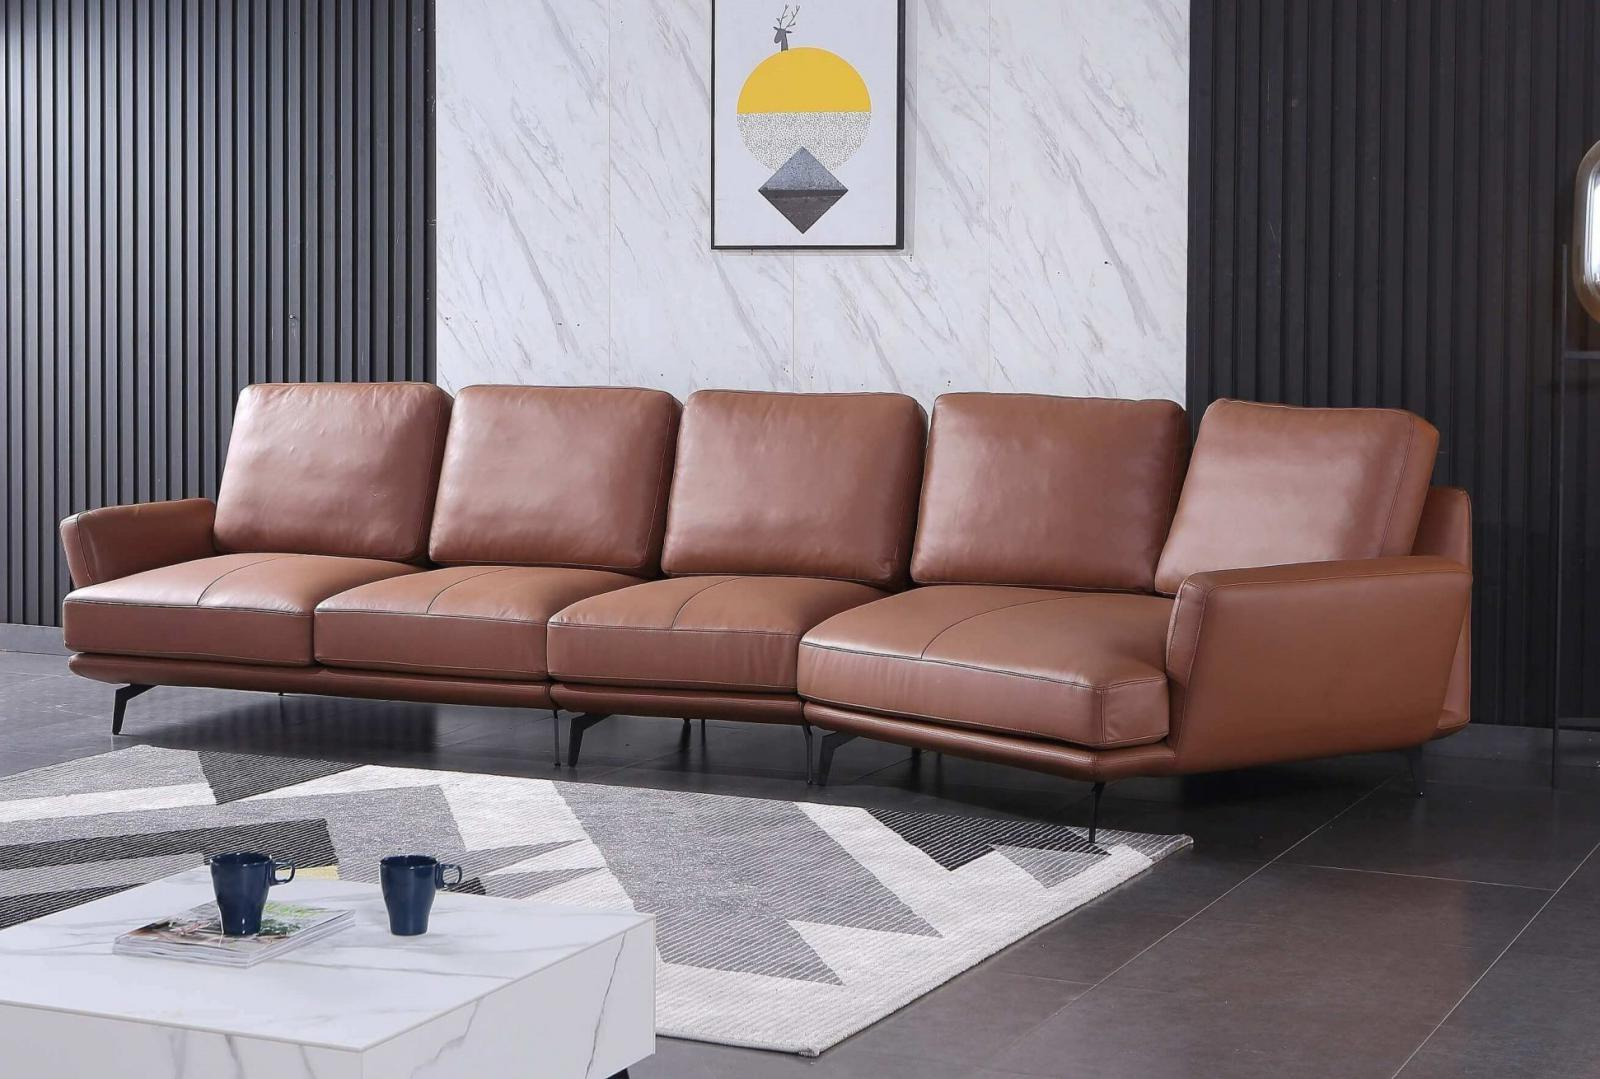 Modern  Vintage Brown Wood  Genuine leather  Solid Hardwood and Italian Leather Sectional Sofa EUROPEAN FURNITURE EF-54433R-3RHC